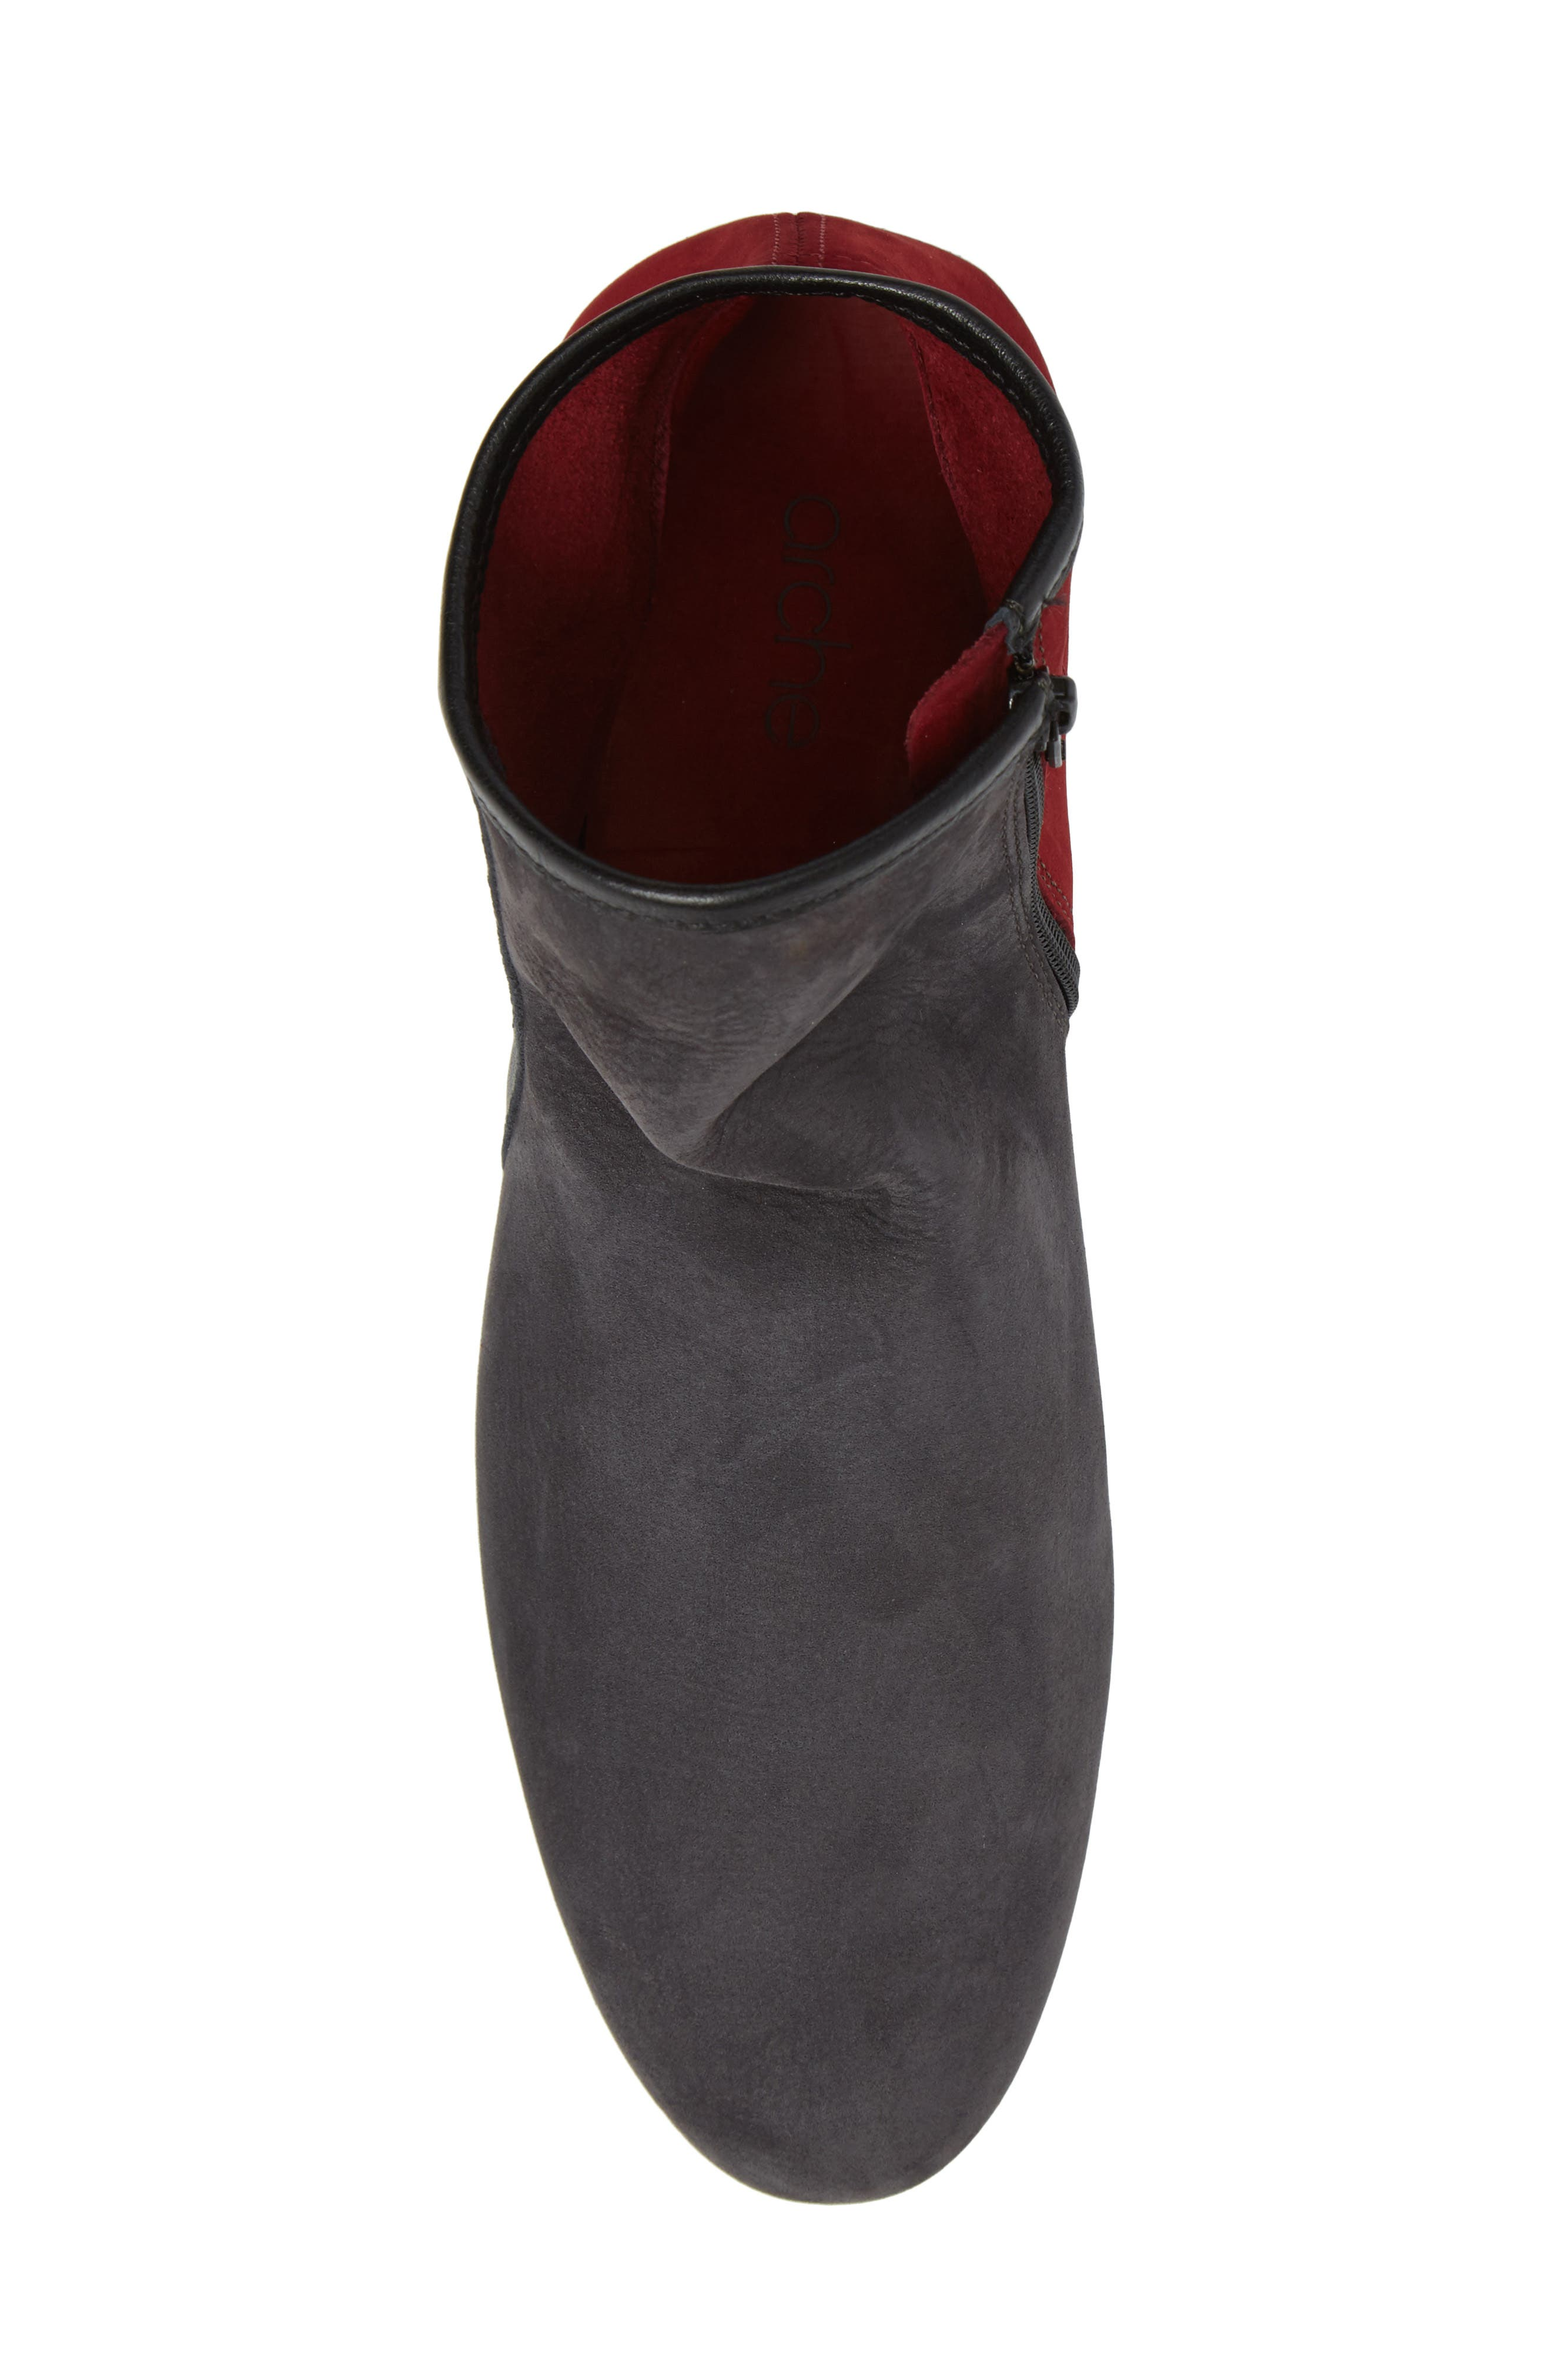 Ninote Bootie,                             Alternate thumbnail 5, color,                             022